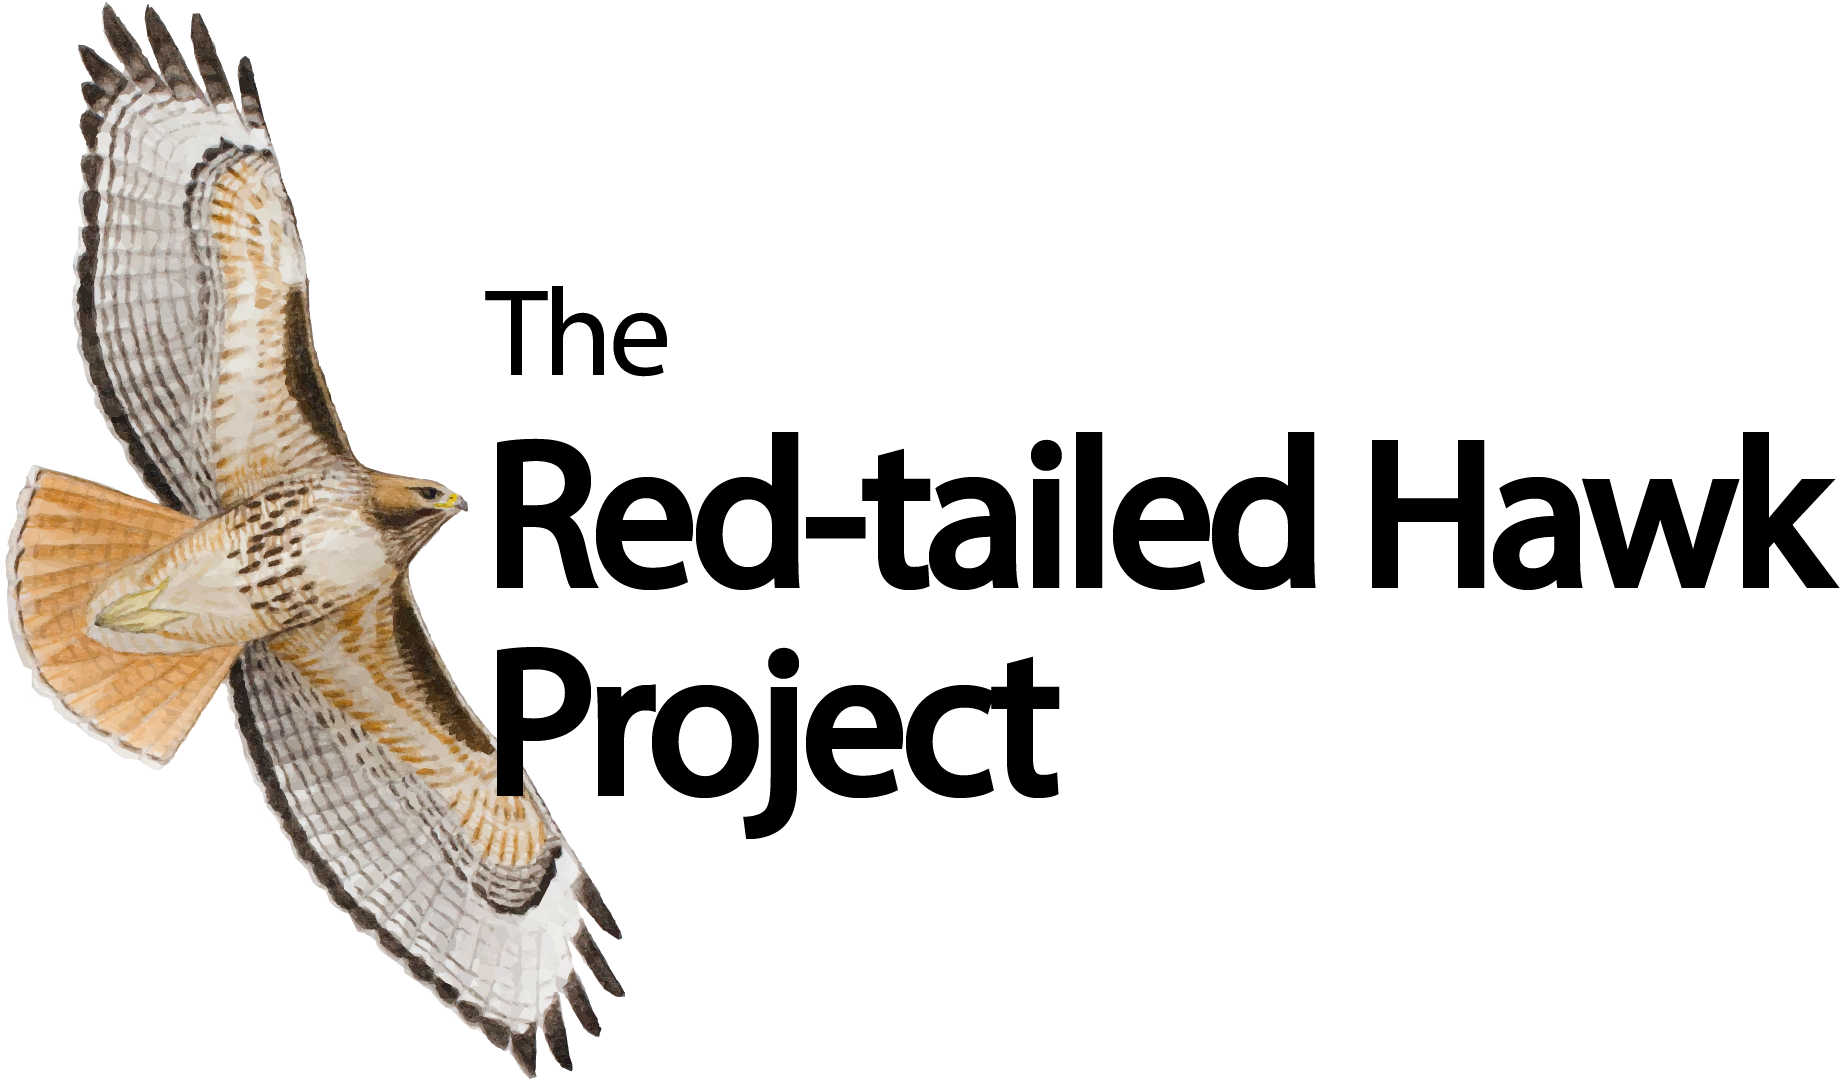 Red-tailed Hawk Project